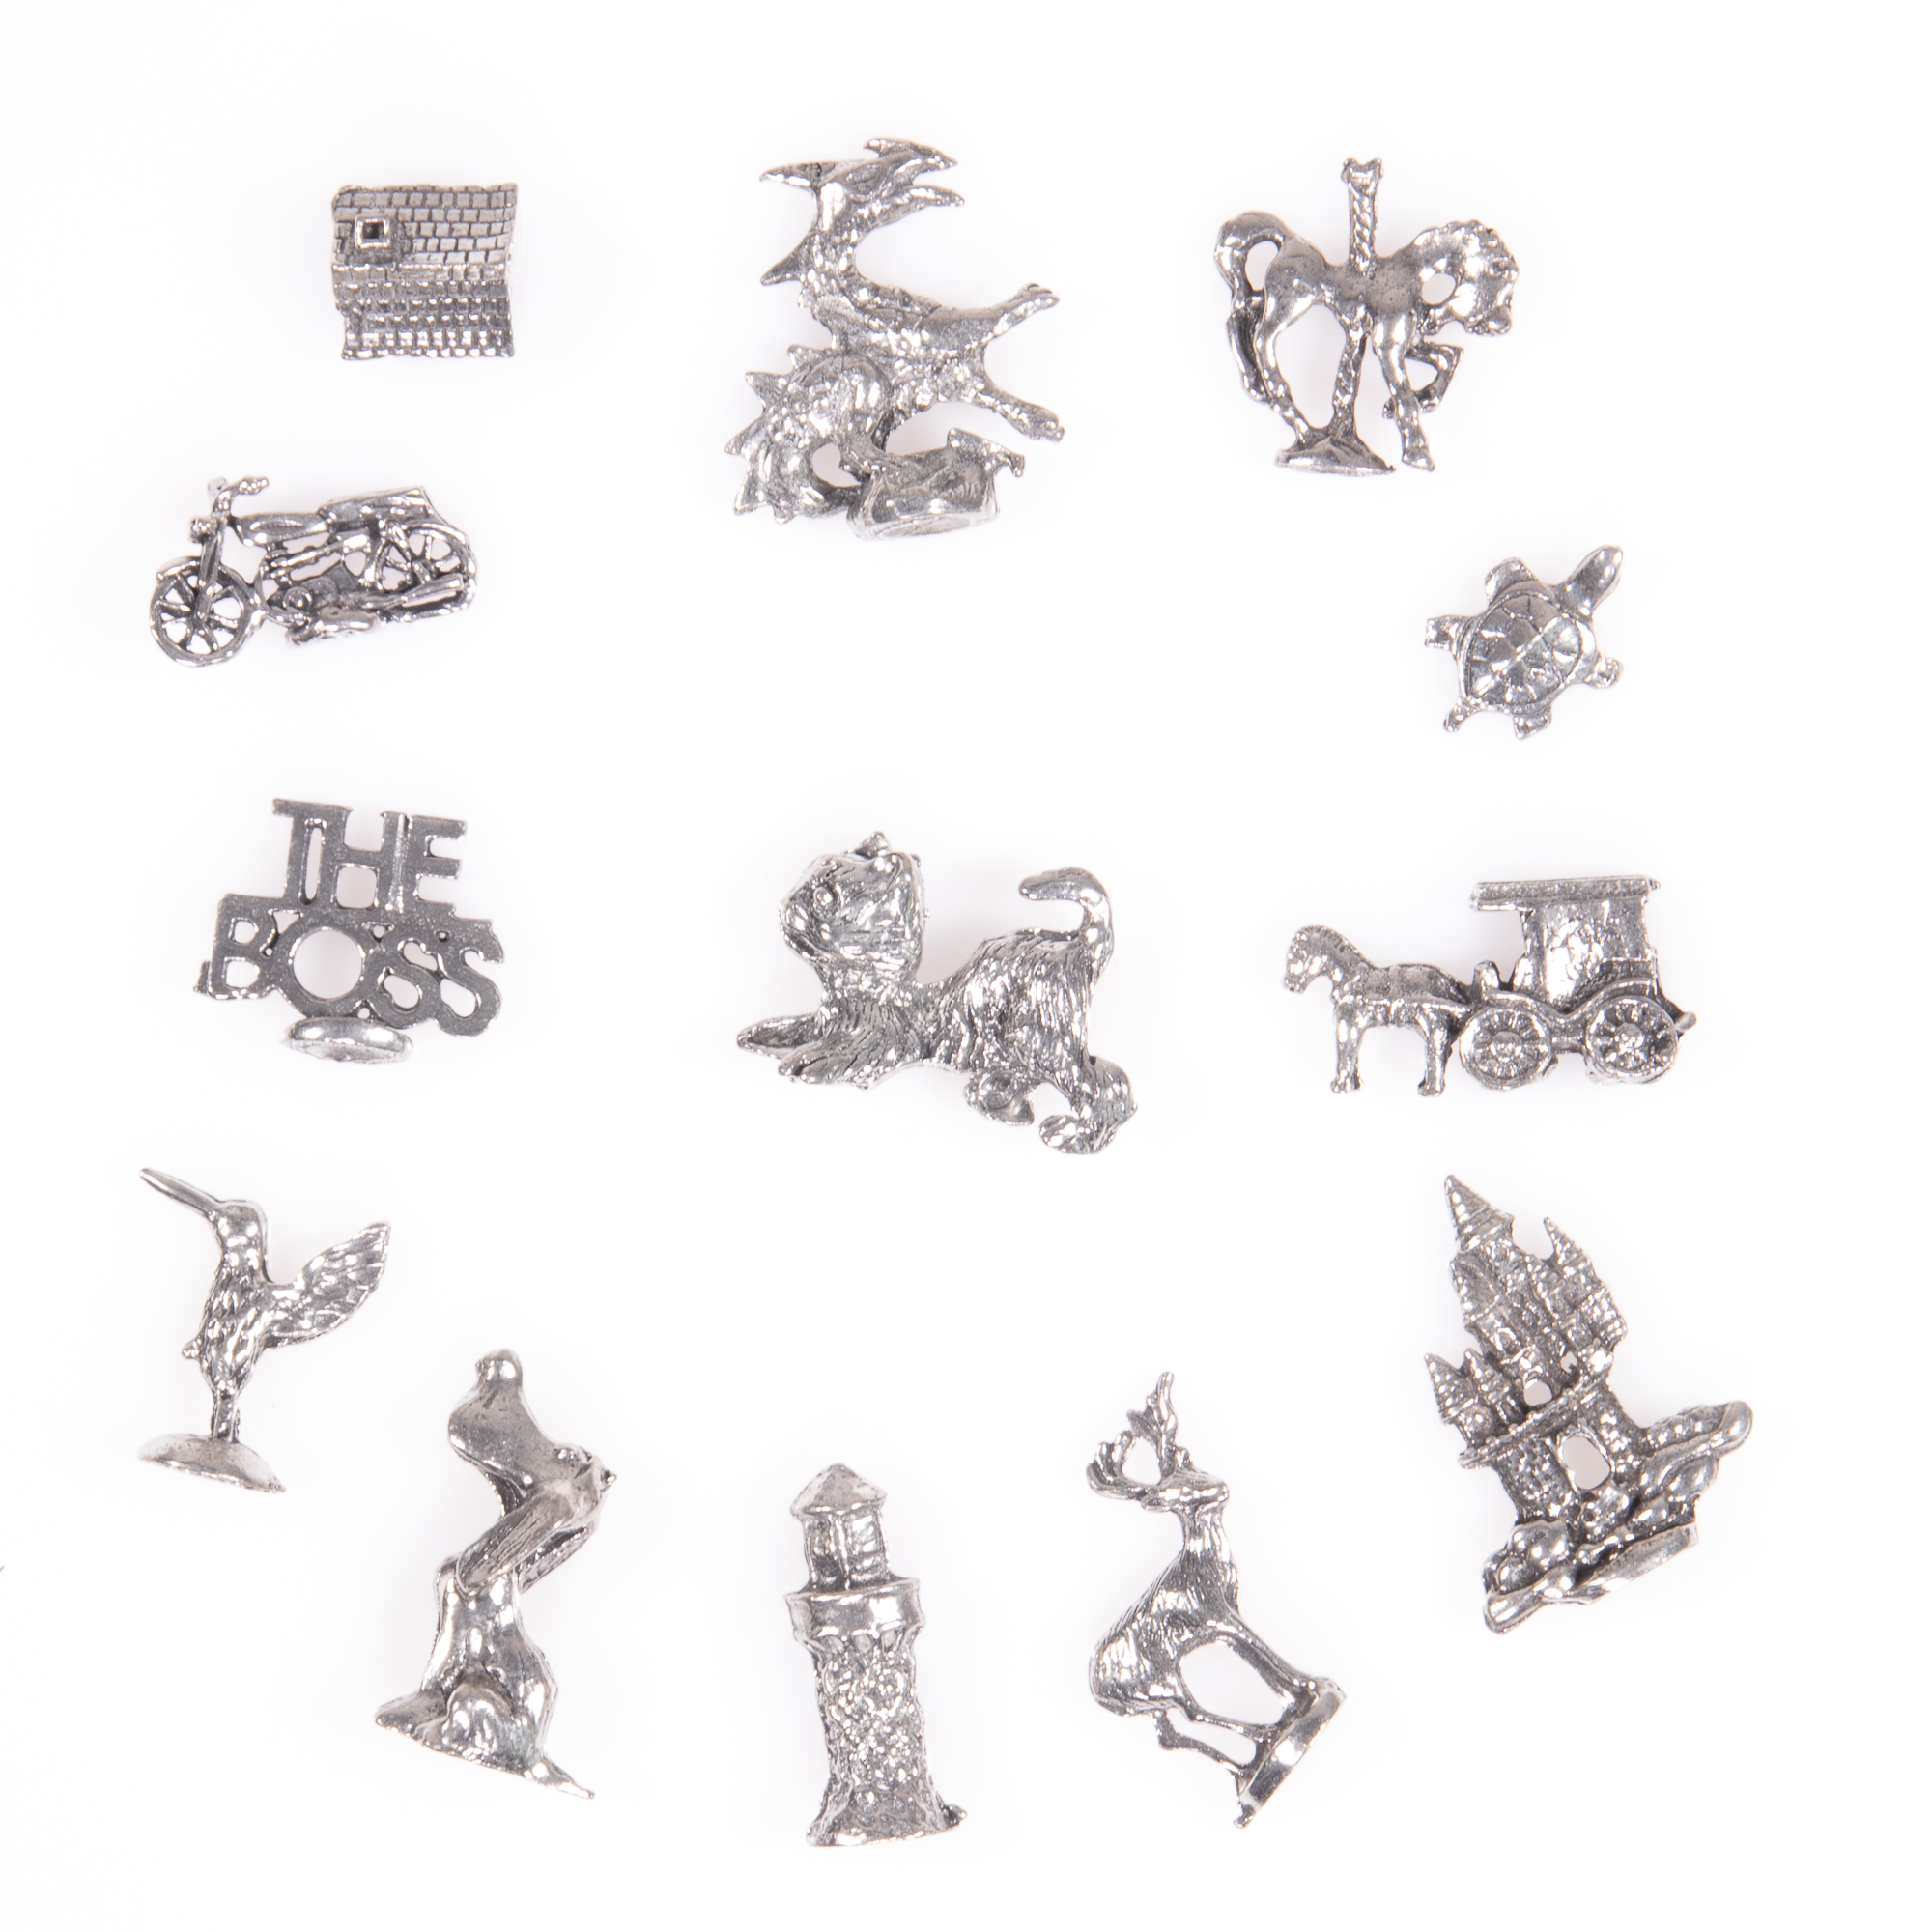 Selection of 13x Silver Novelty Charms - Image 3 of 6